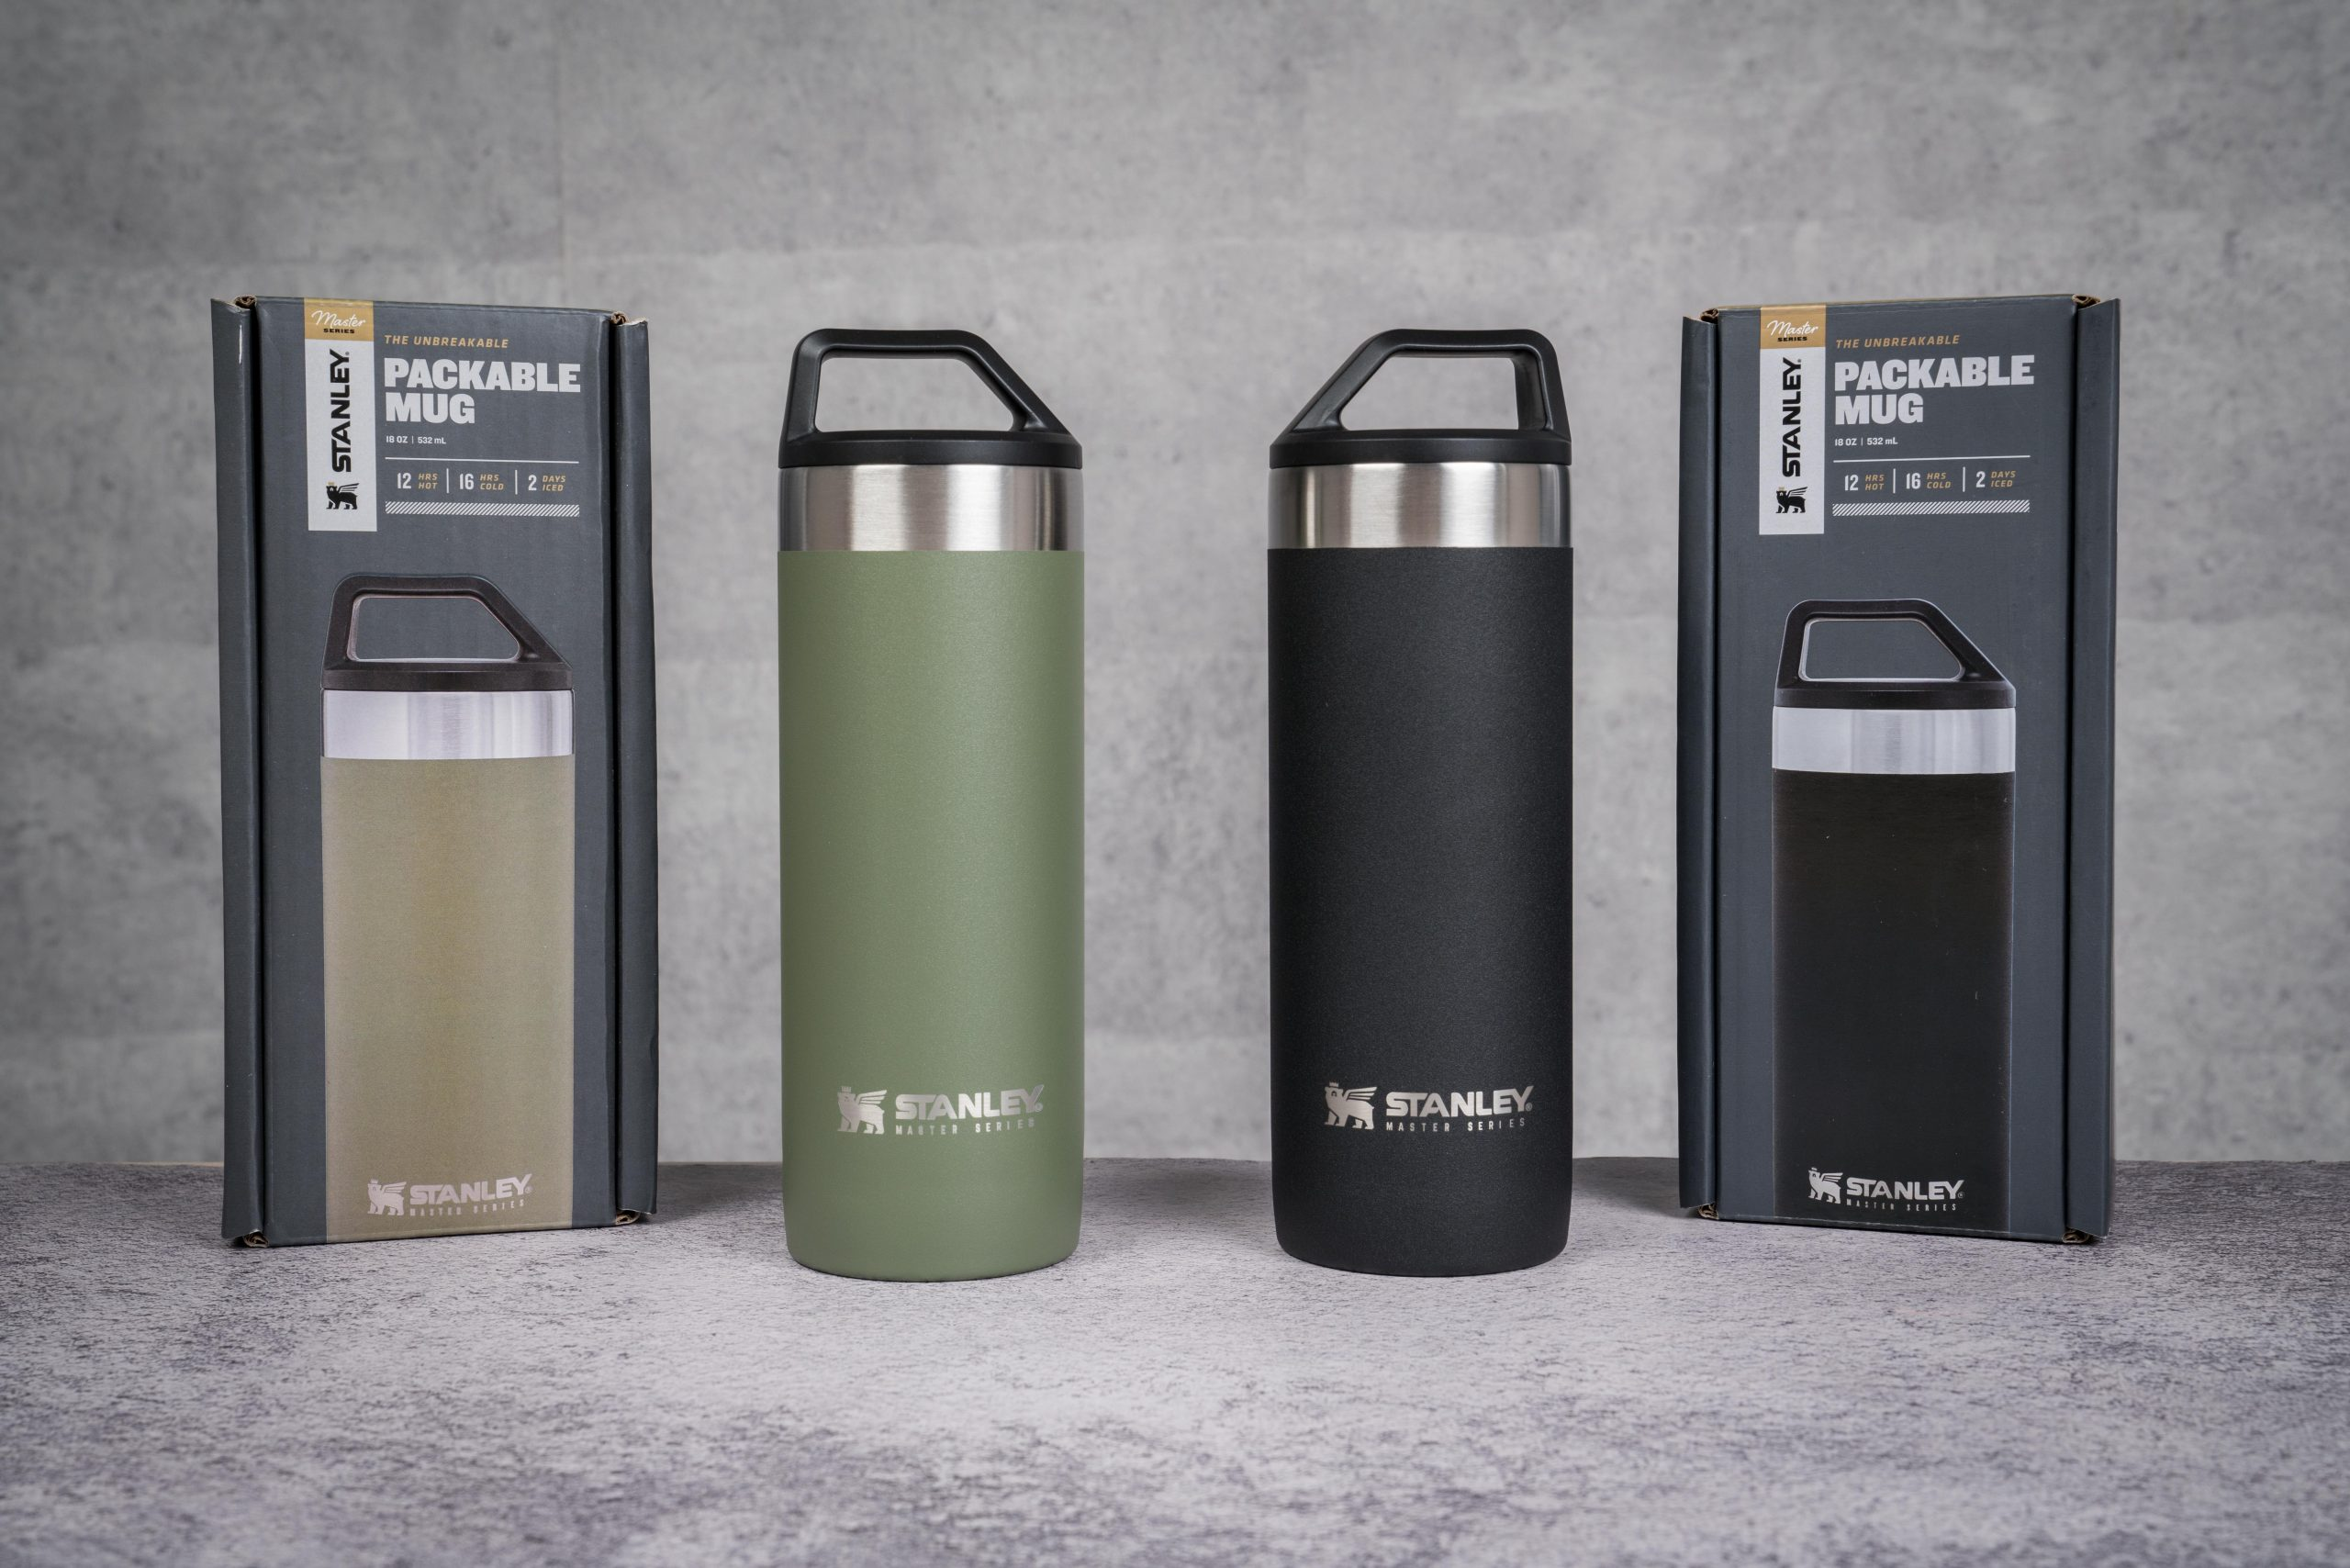 Bình giữ nhiệt Stanley Master Unbreakable Packable Mug   18 OZ